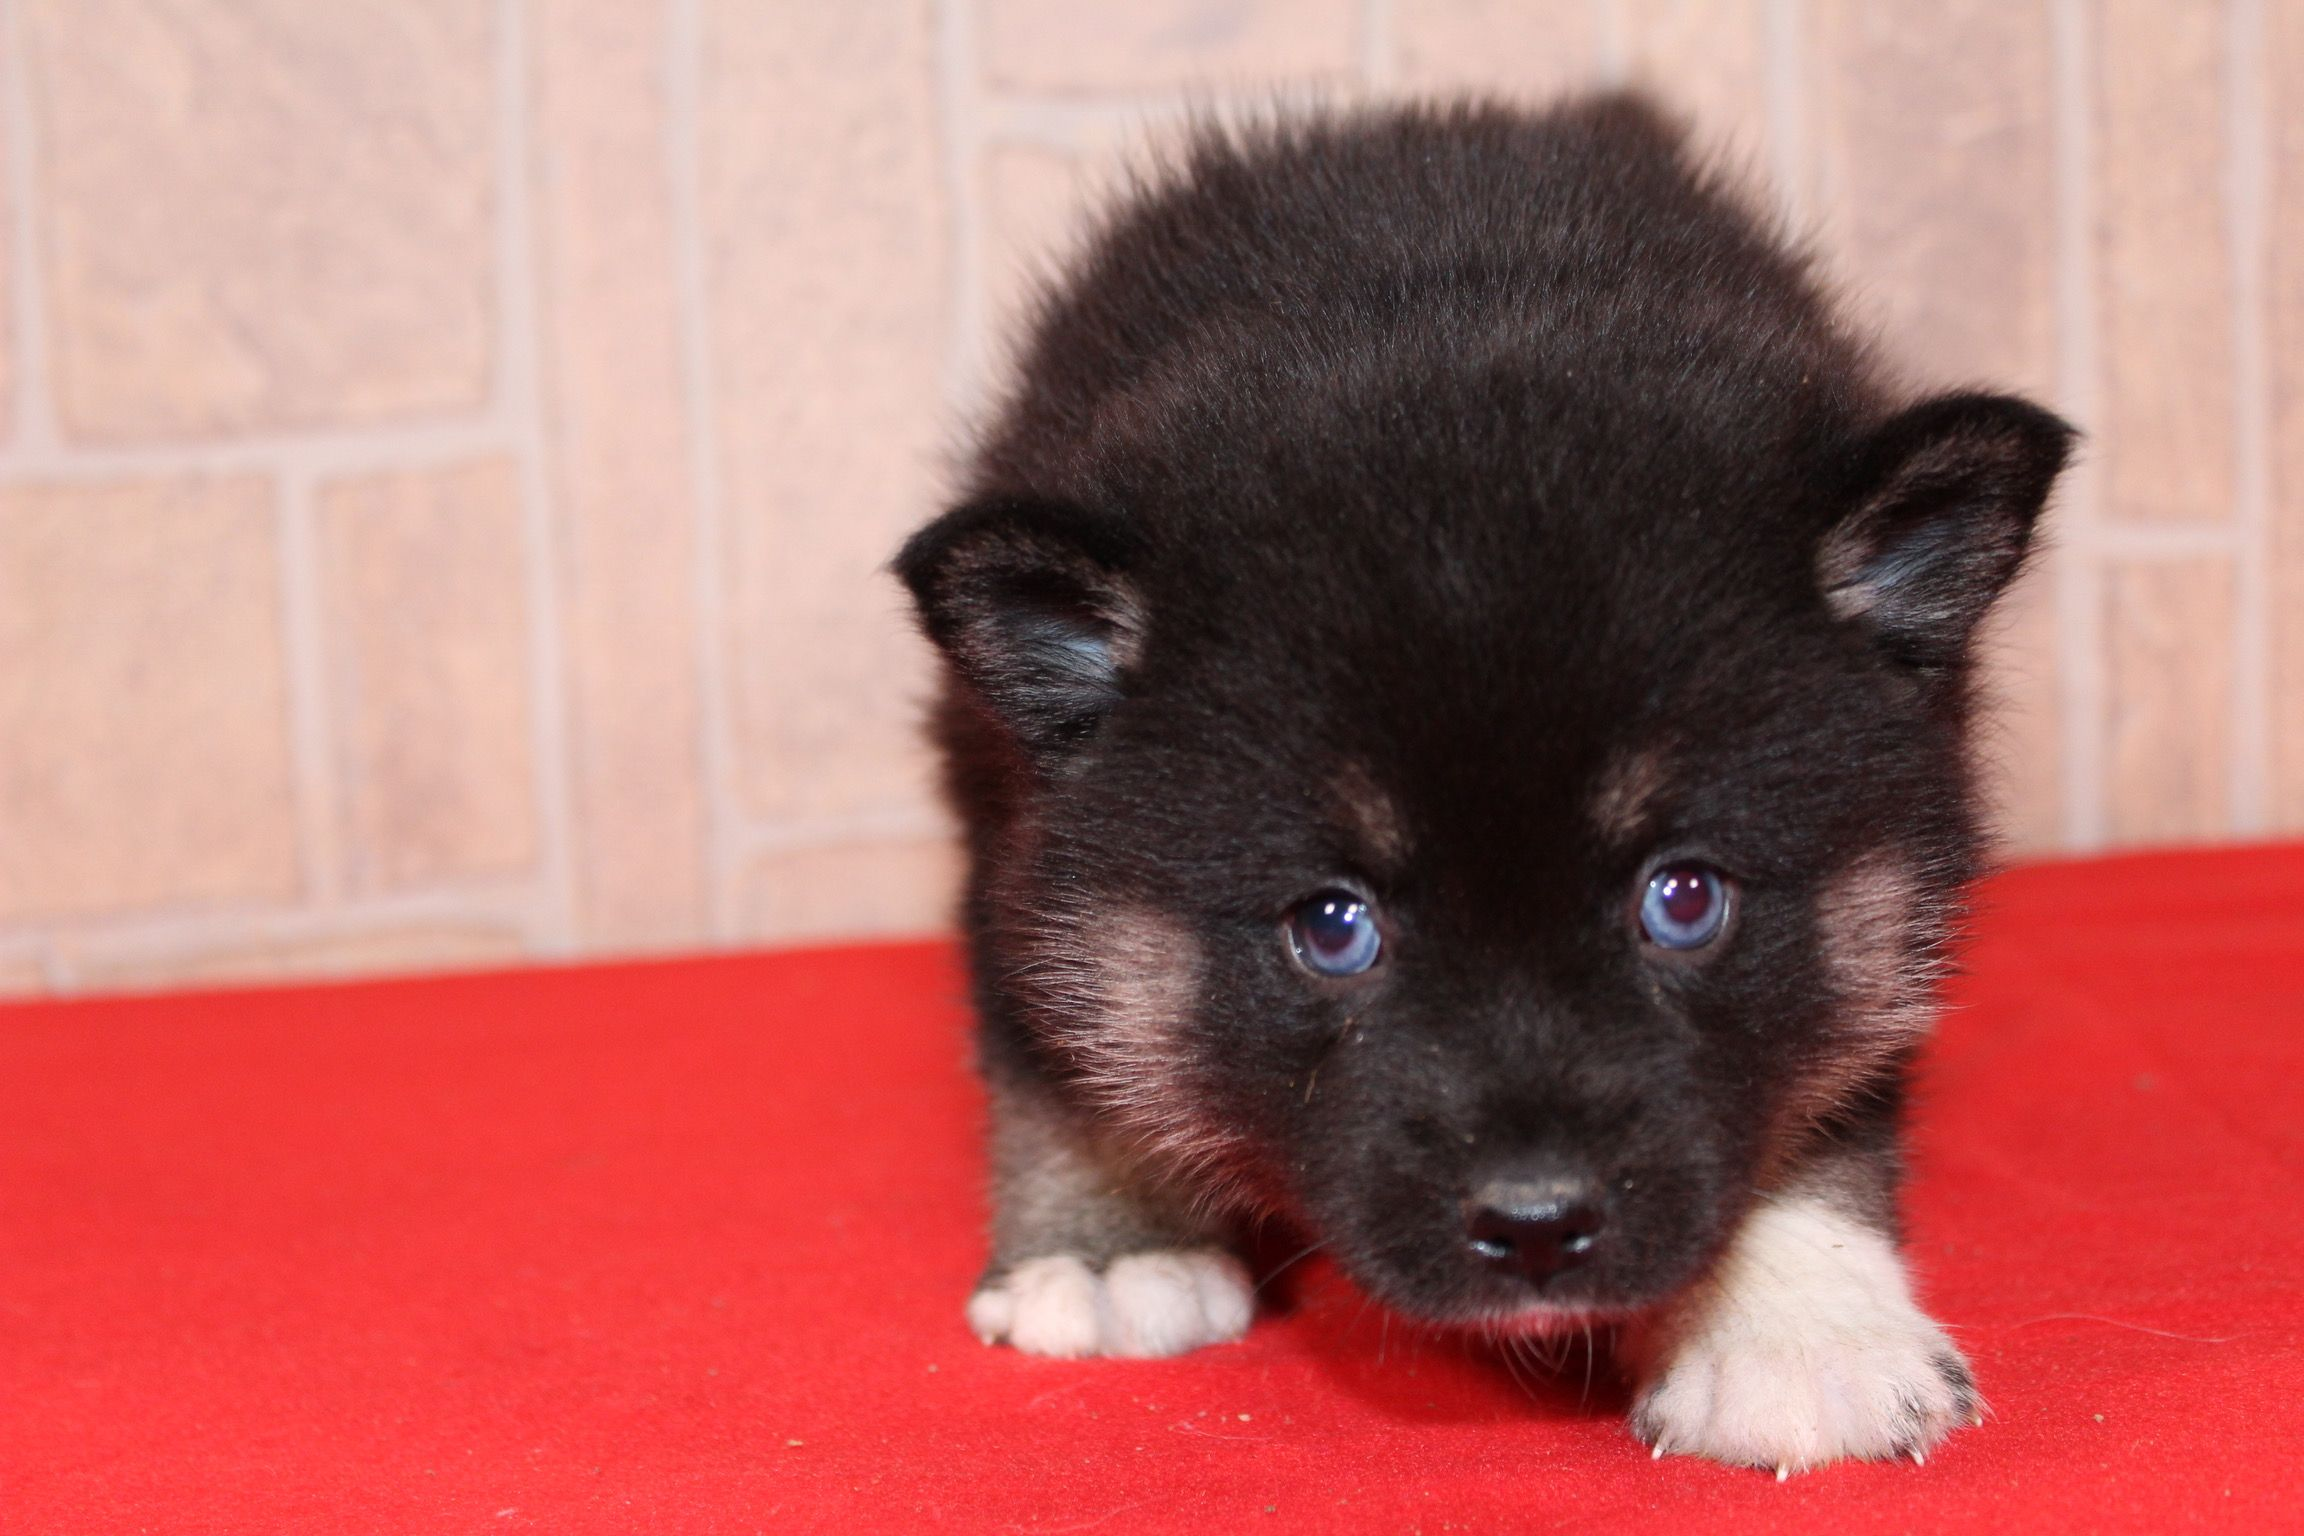 Eska A Newborn Ckc Female Pomsky In Indiana Find Cute Pomsky Puppies And Responsible Pomsky Breeders At Vippuppies Puppies For Sale Puppies Puppies Near Me